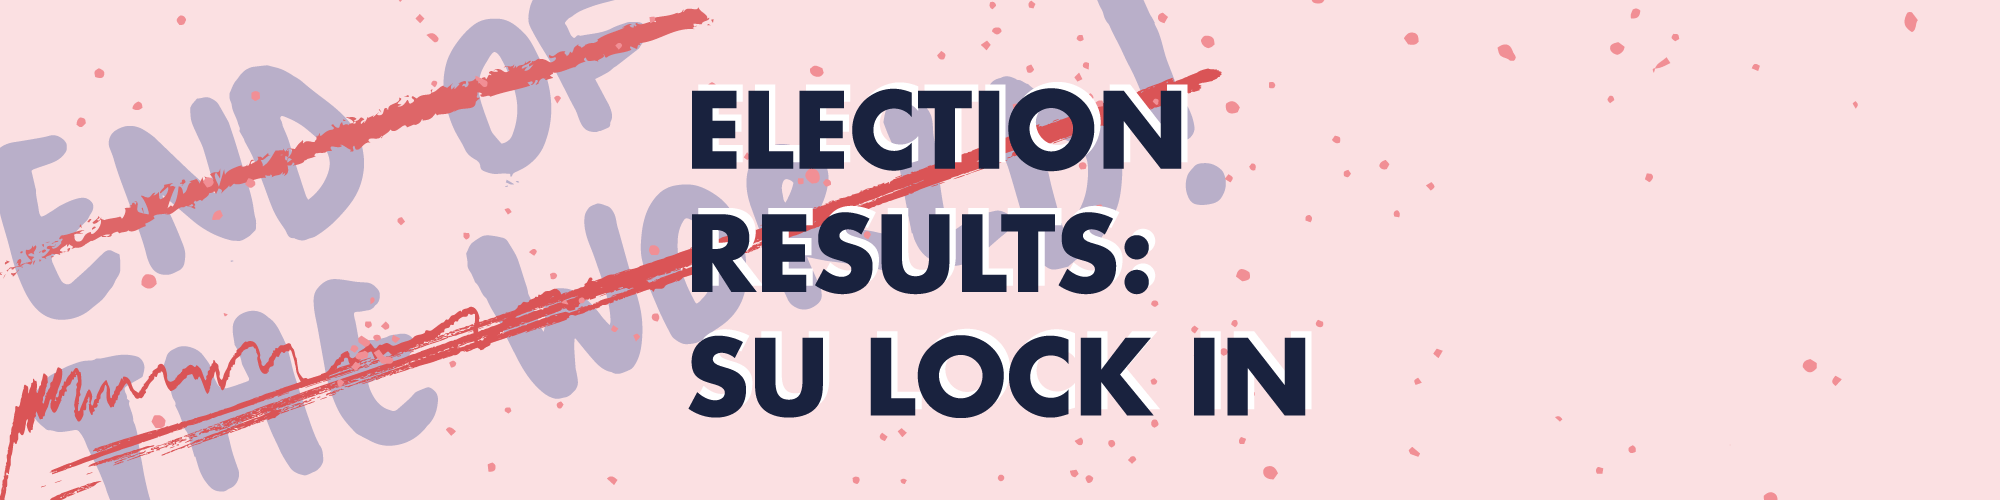 Elections results night lock-in!